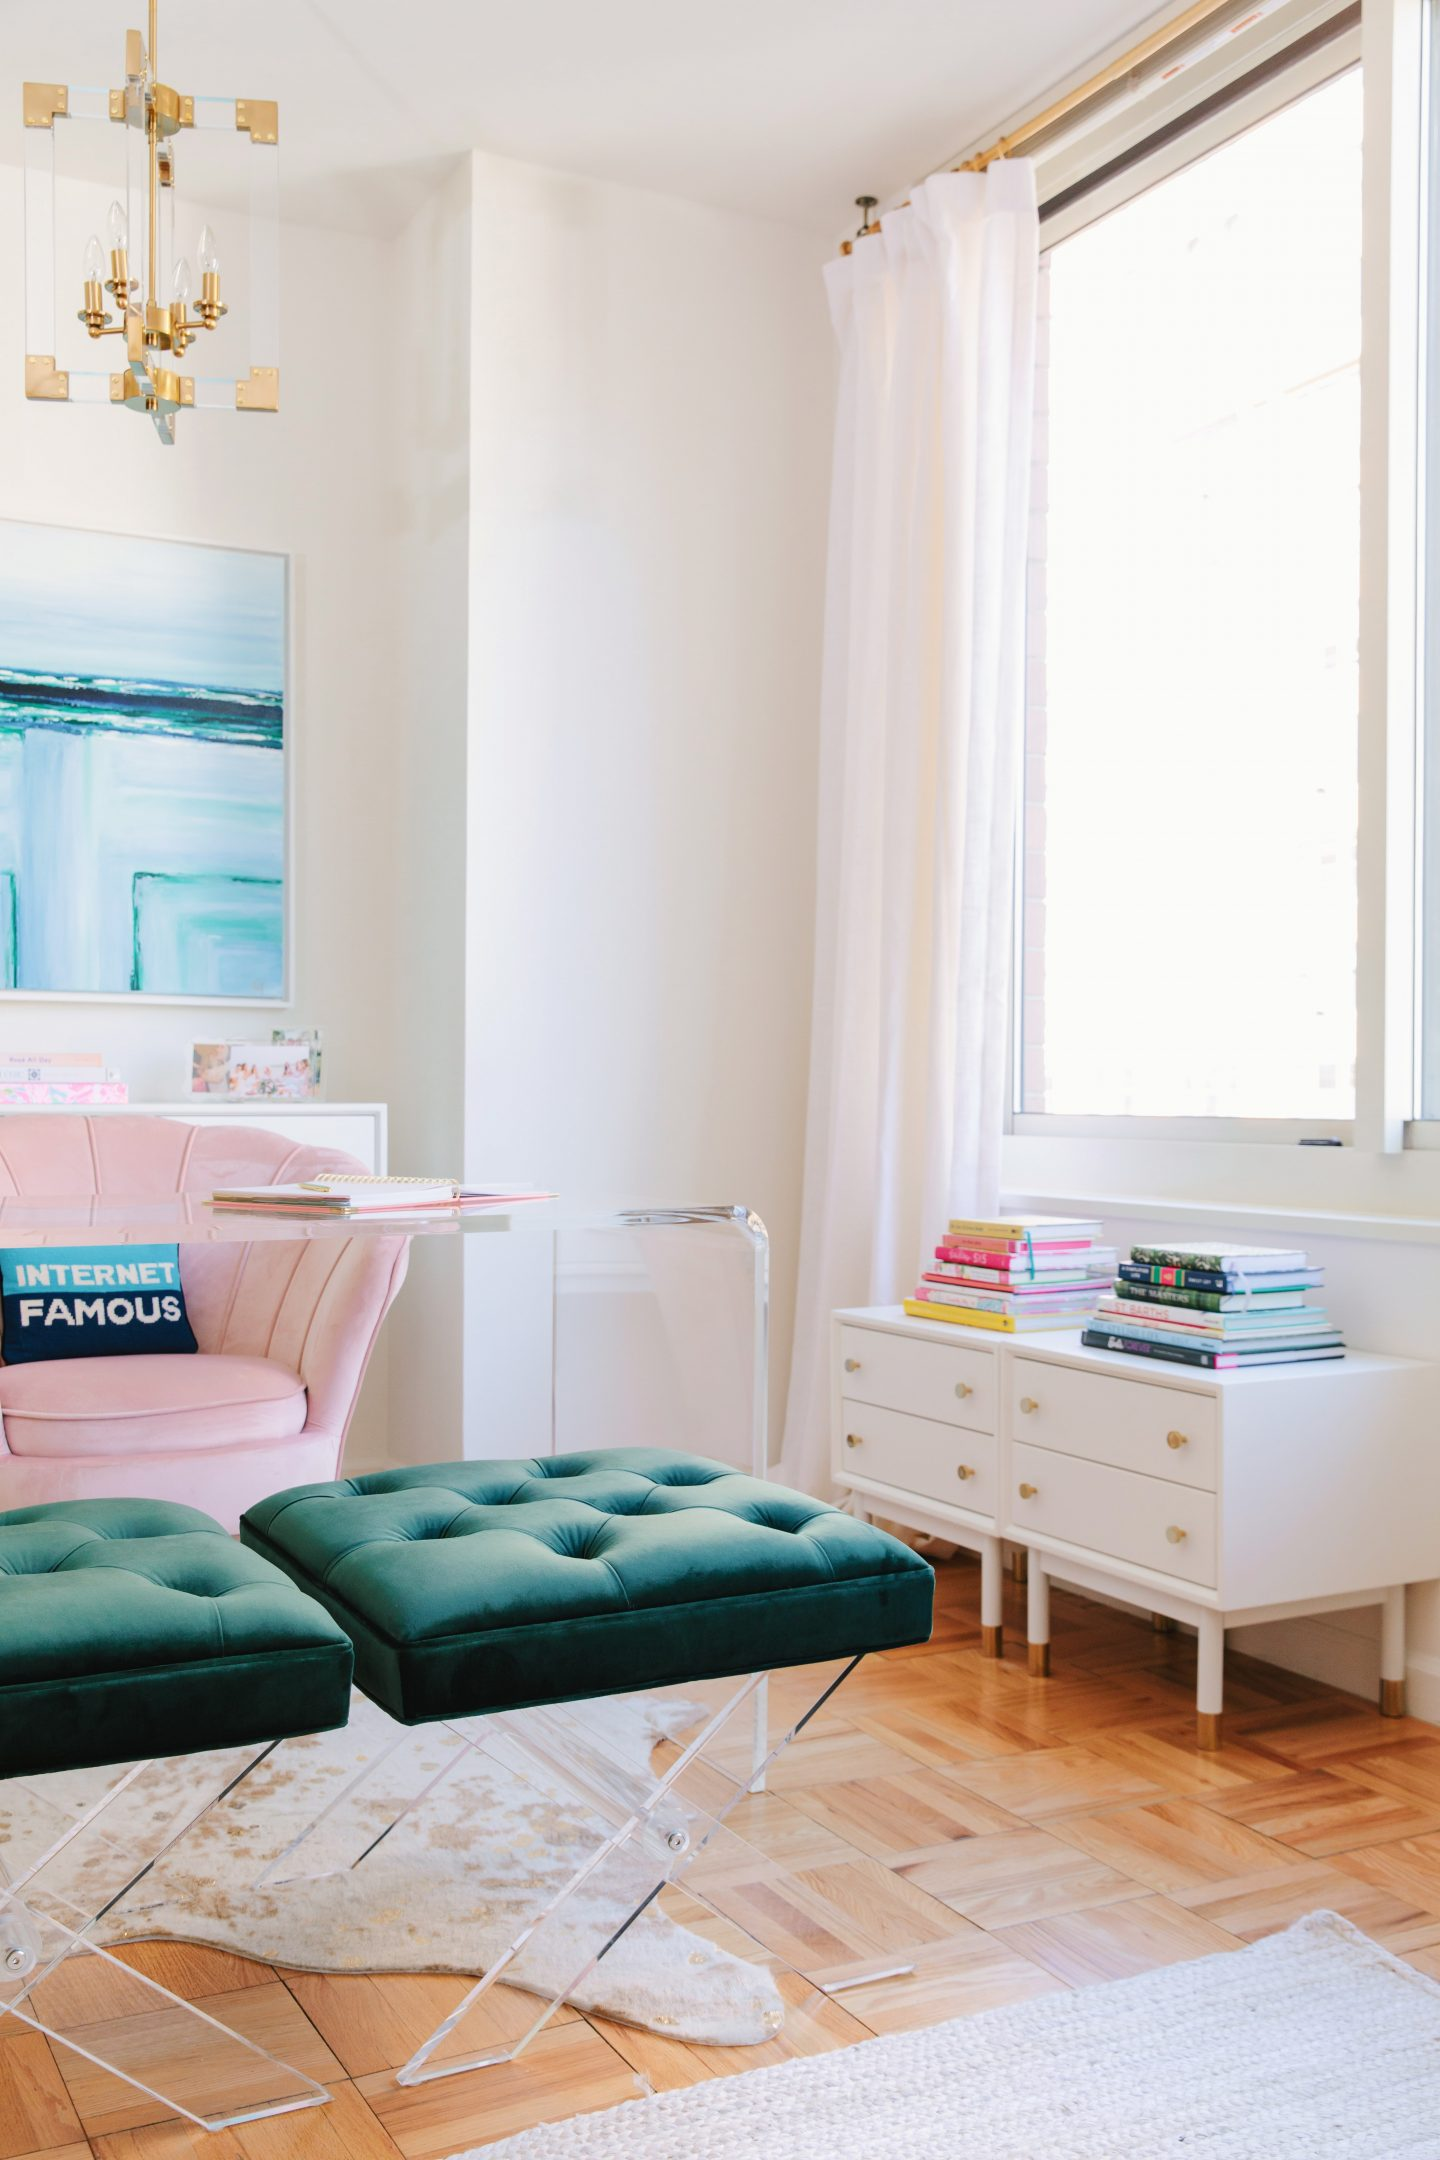 Apartment Office Tour with Apt2B